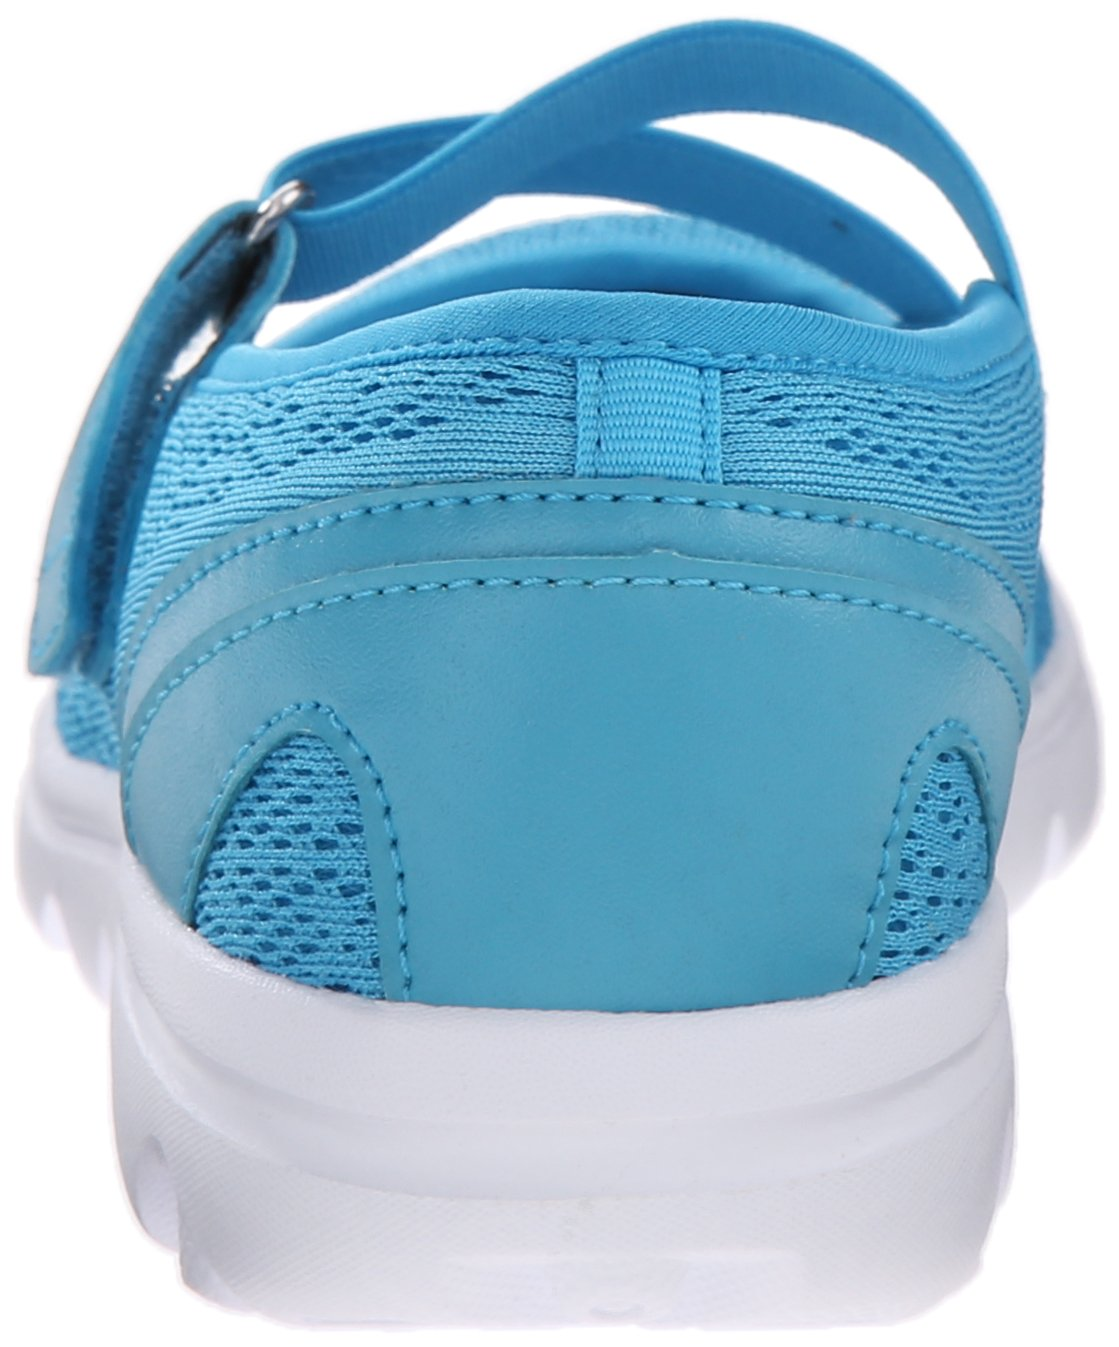 Propet Women's TravelActiv Mary Jane Fashion Sneaker B0118FDO4E 7.5 N US|Pacific